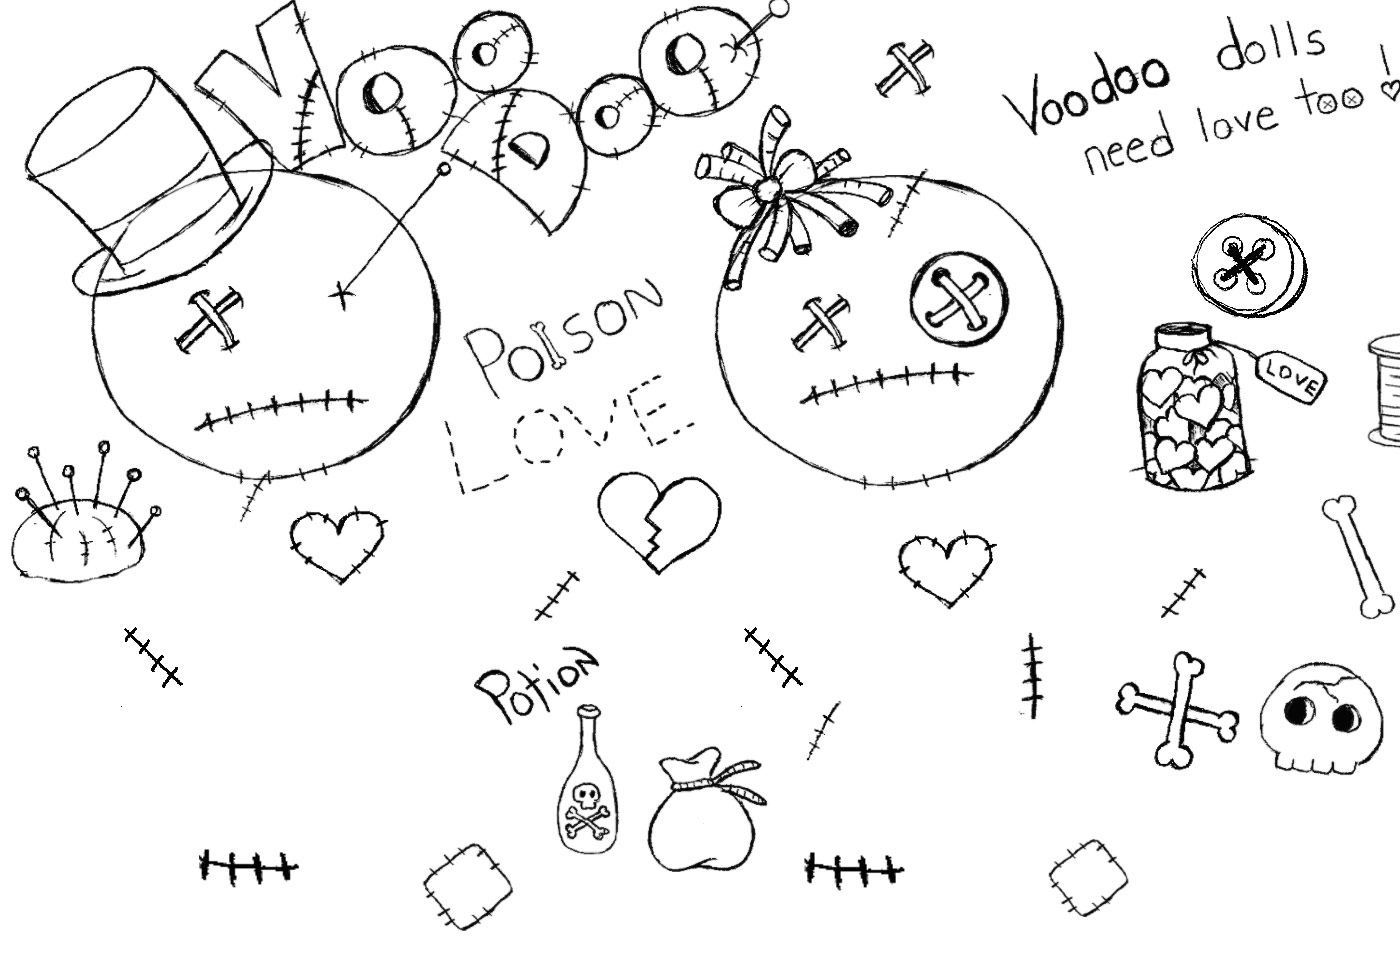 Free Voodoo Doll Brushes